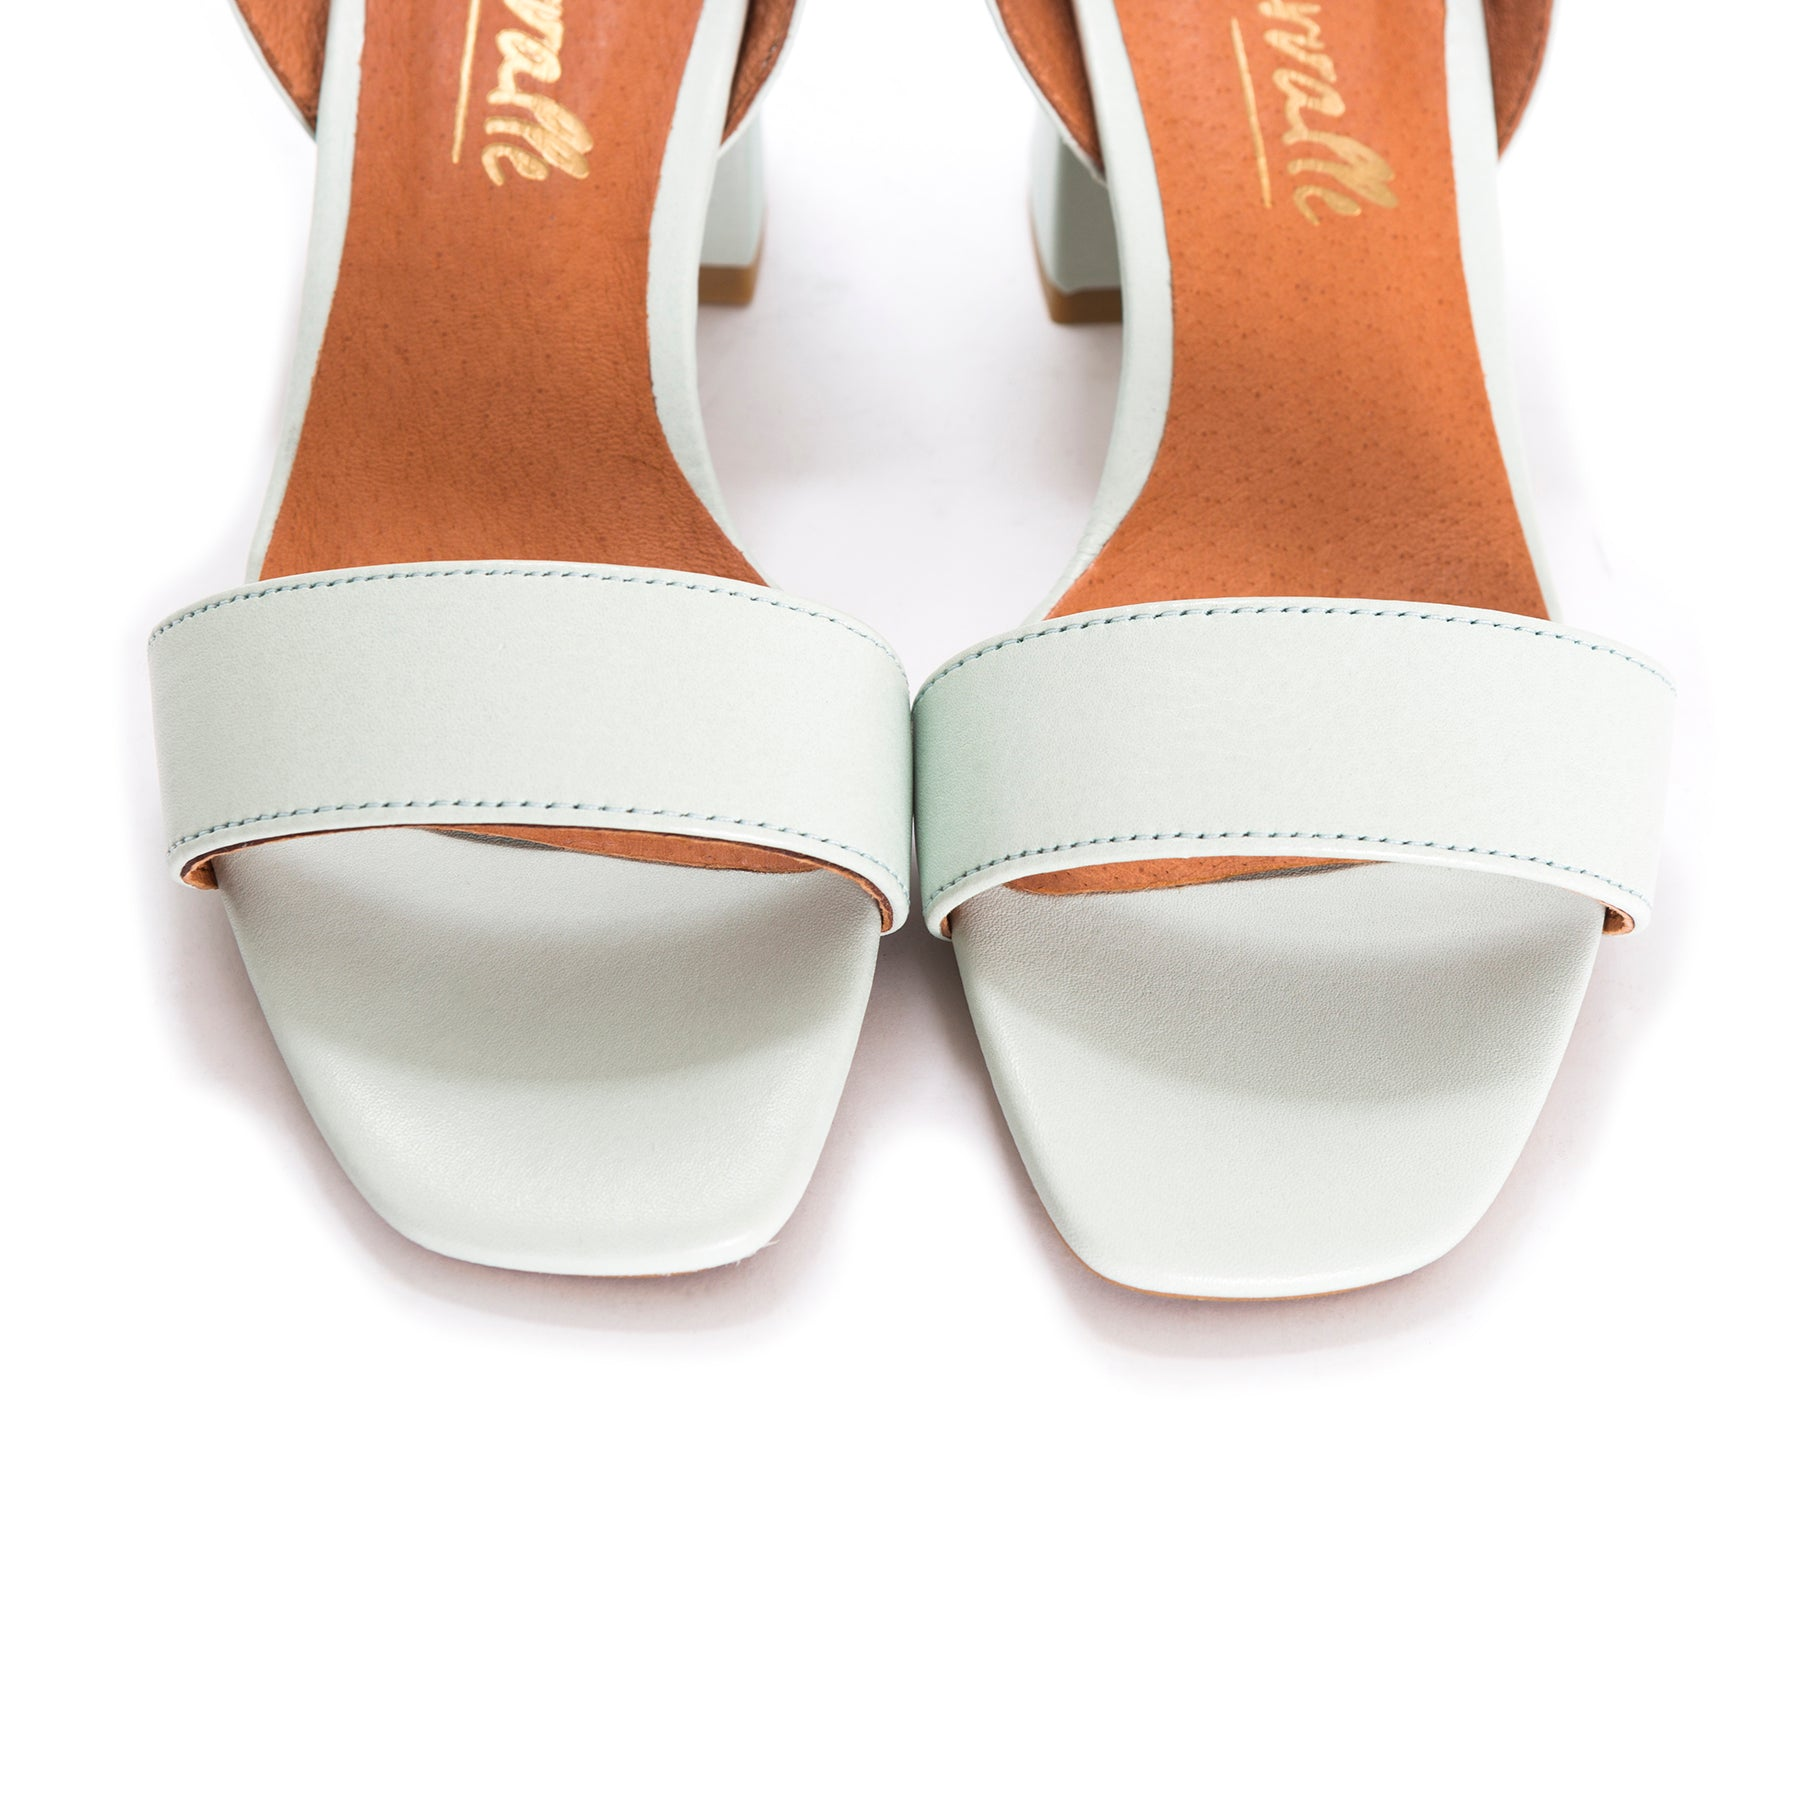 Perla Mint Leather Sandals